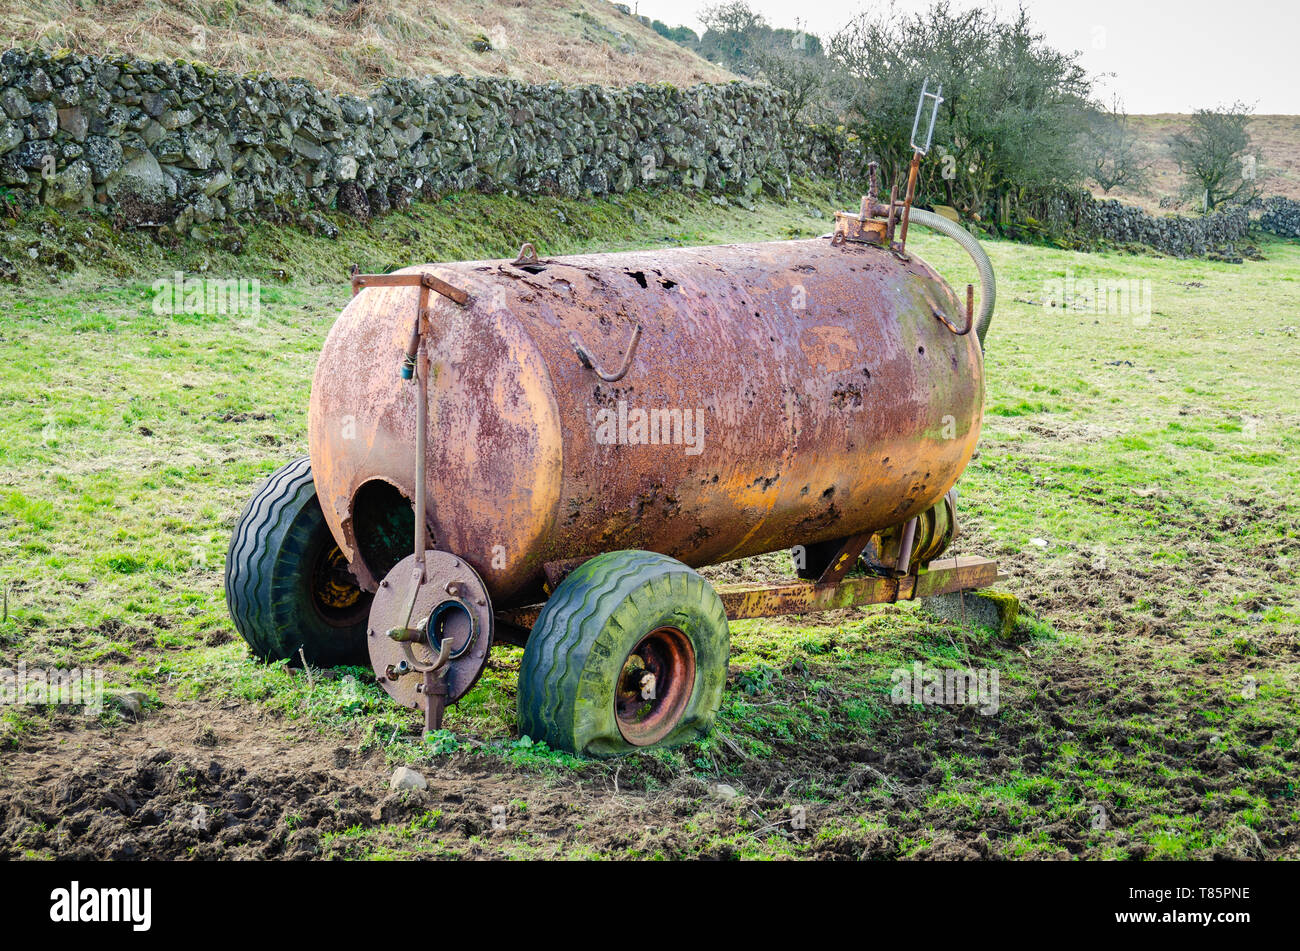 A rusty, corroded slurry tanker with punctured tyres sits abandoned in a muddy field in the Irish countryside. - Stock Image